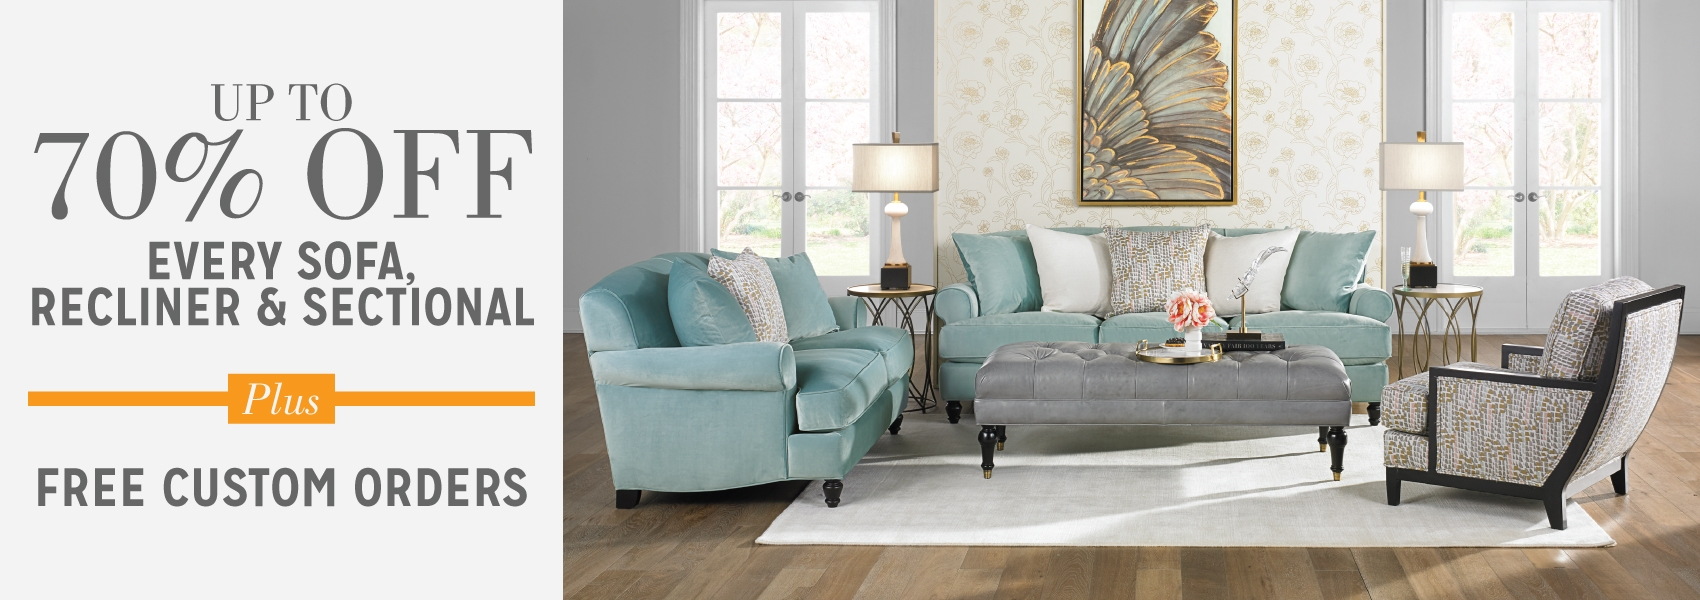 Up to 70% Off Every Sofa, Recliner & Sectional Plus Free Custom Orders